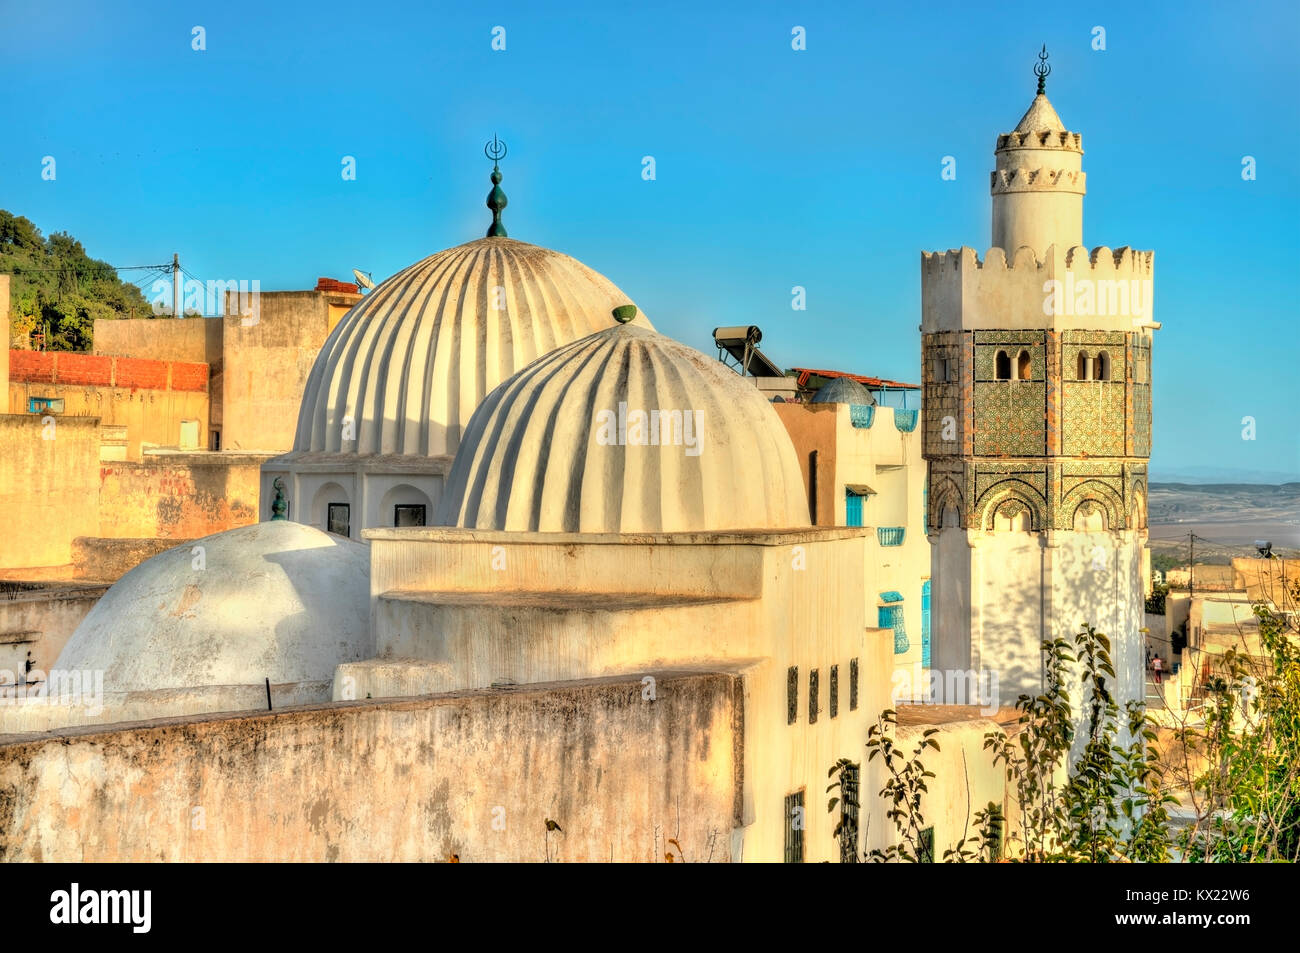 Sidi Bou Makhlouf Mosque at El Kef in Tunisia - Stock Image